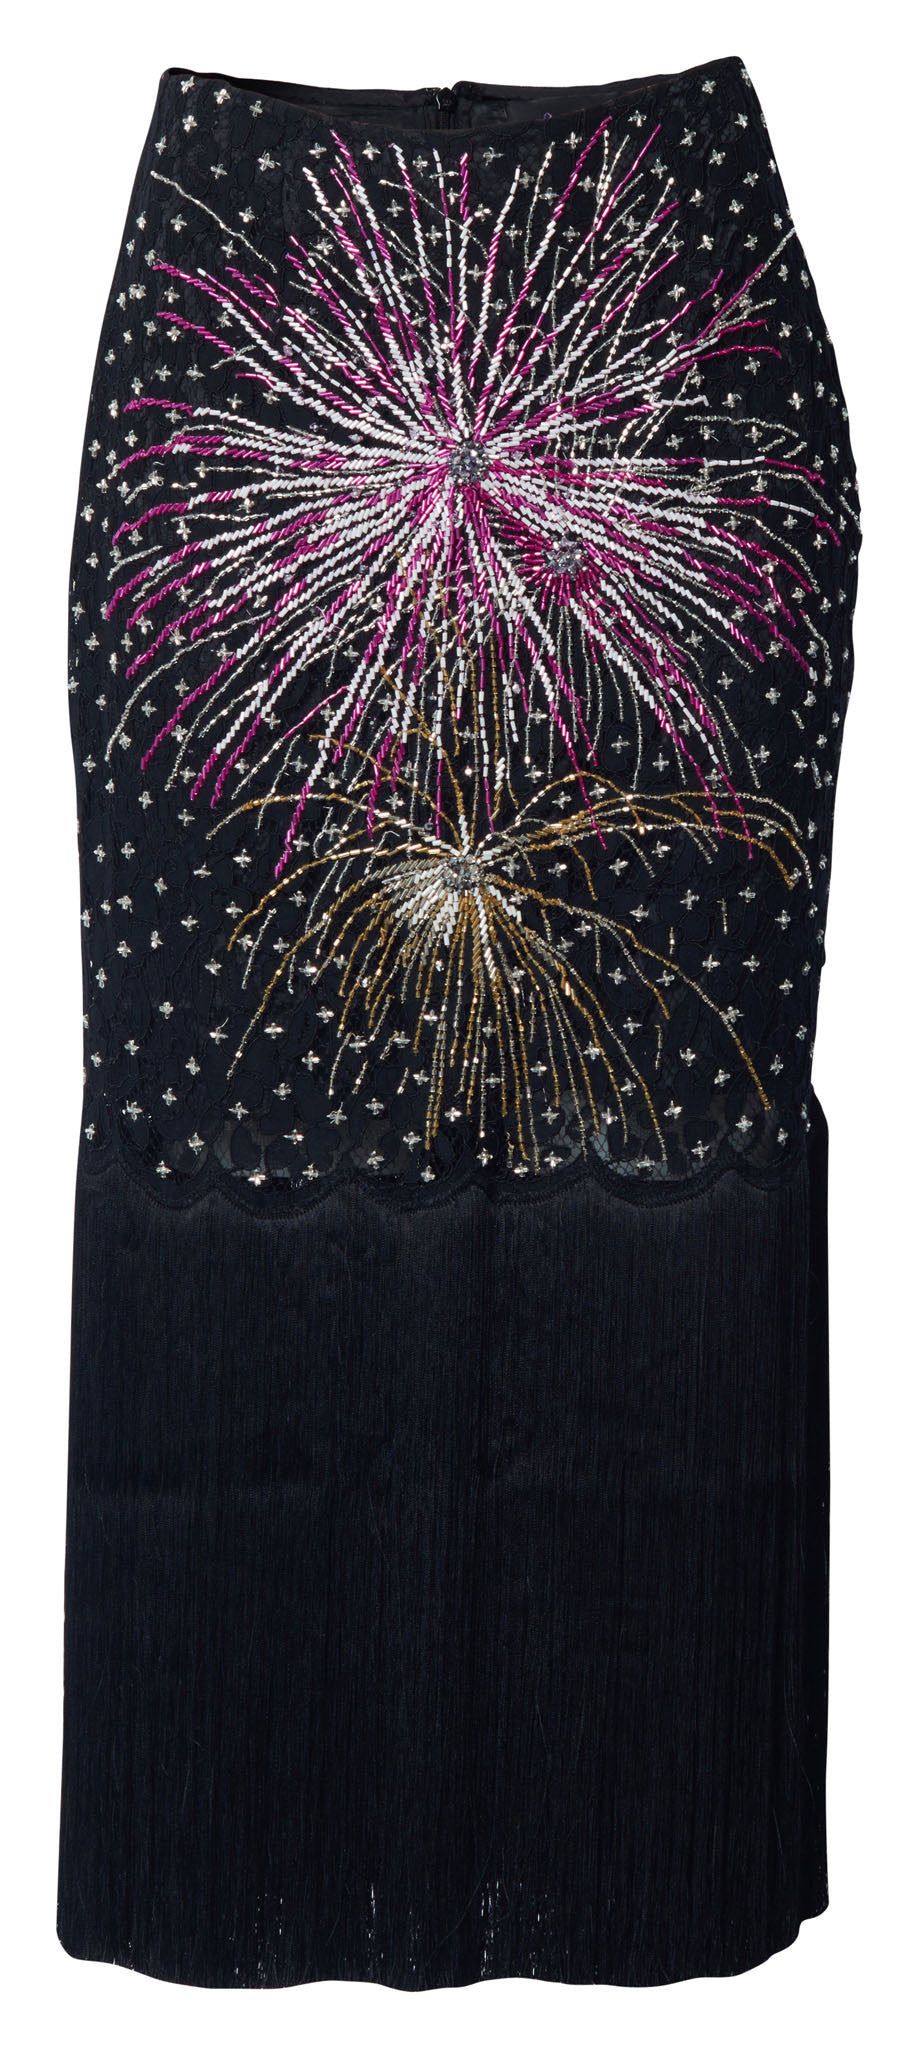 Fireworks Concerto Lace Skirt